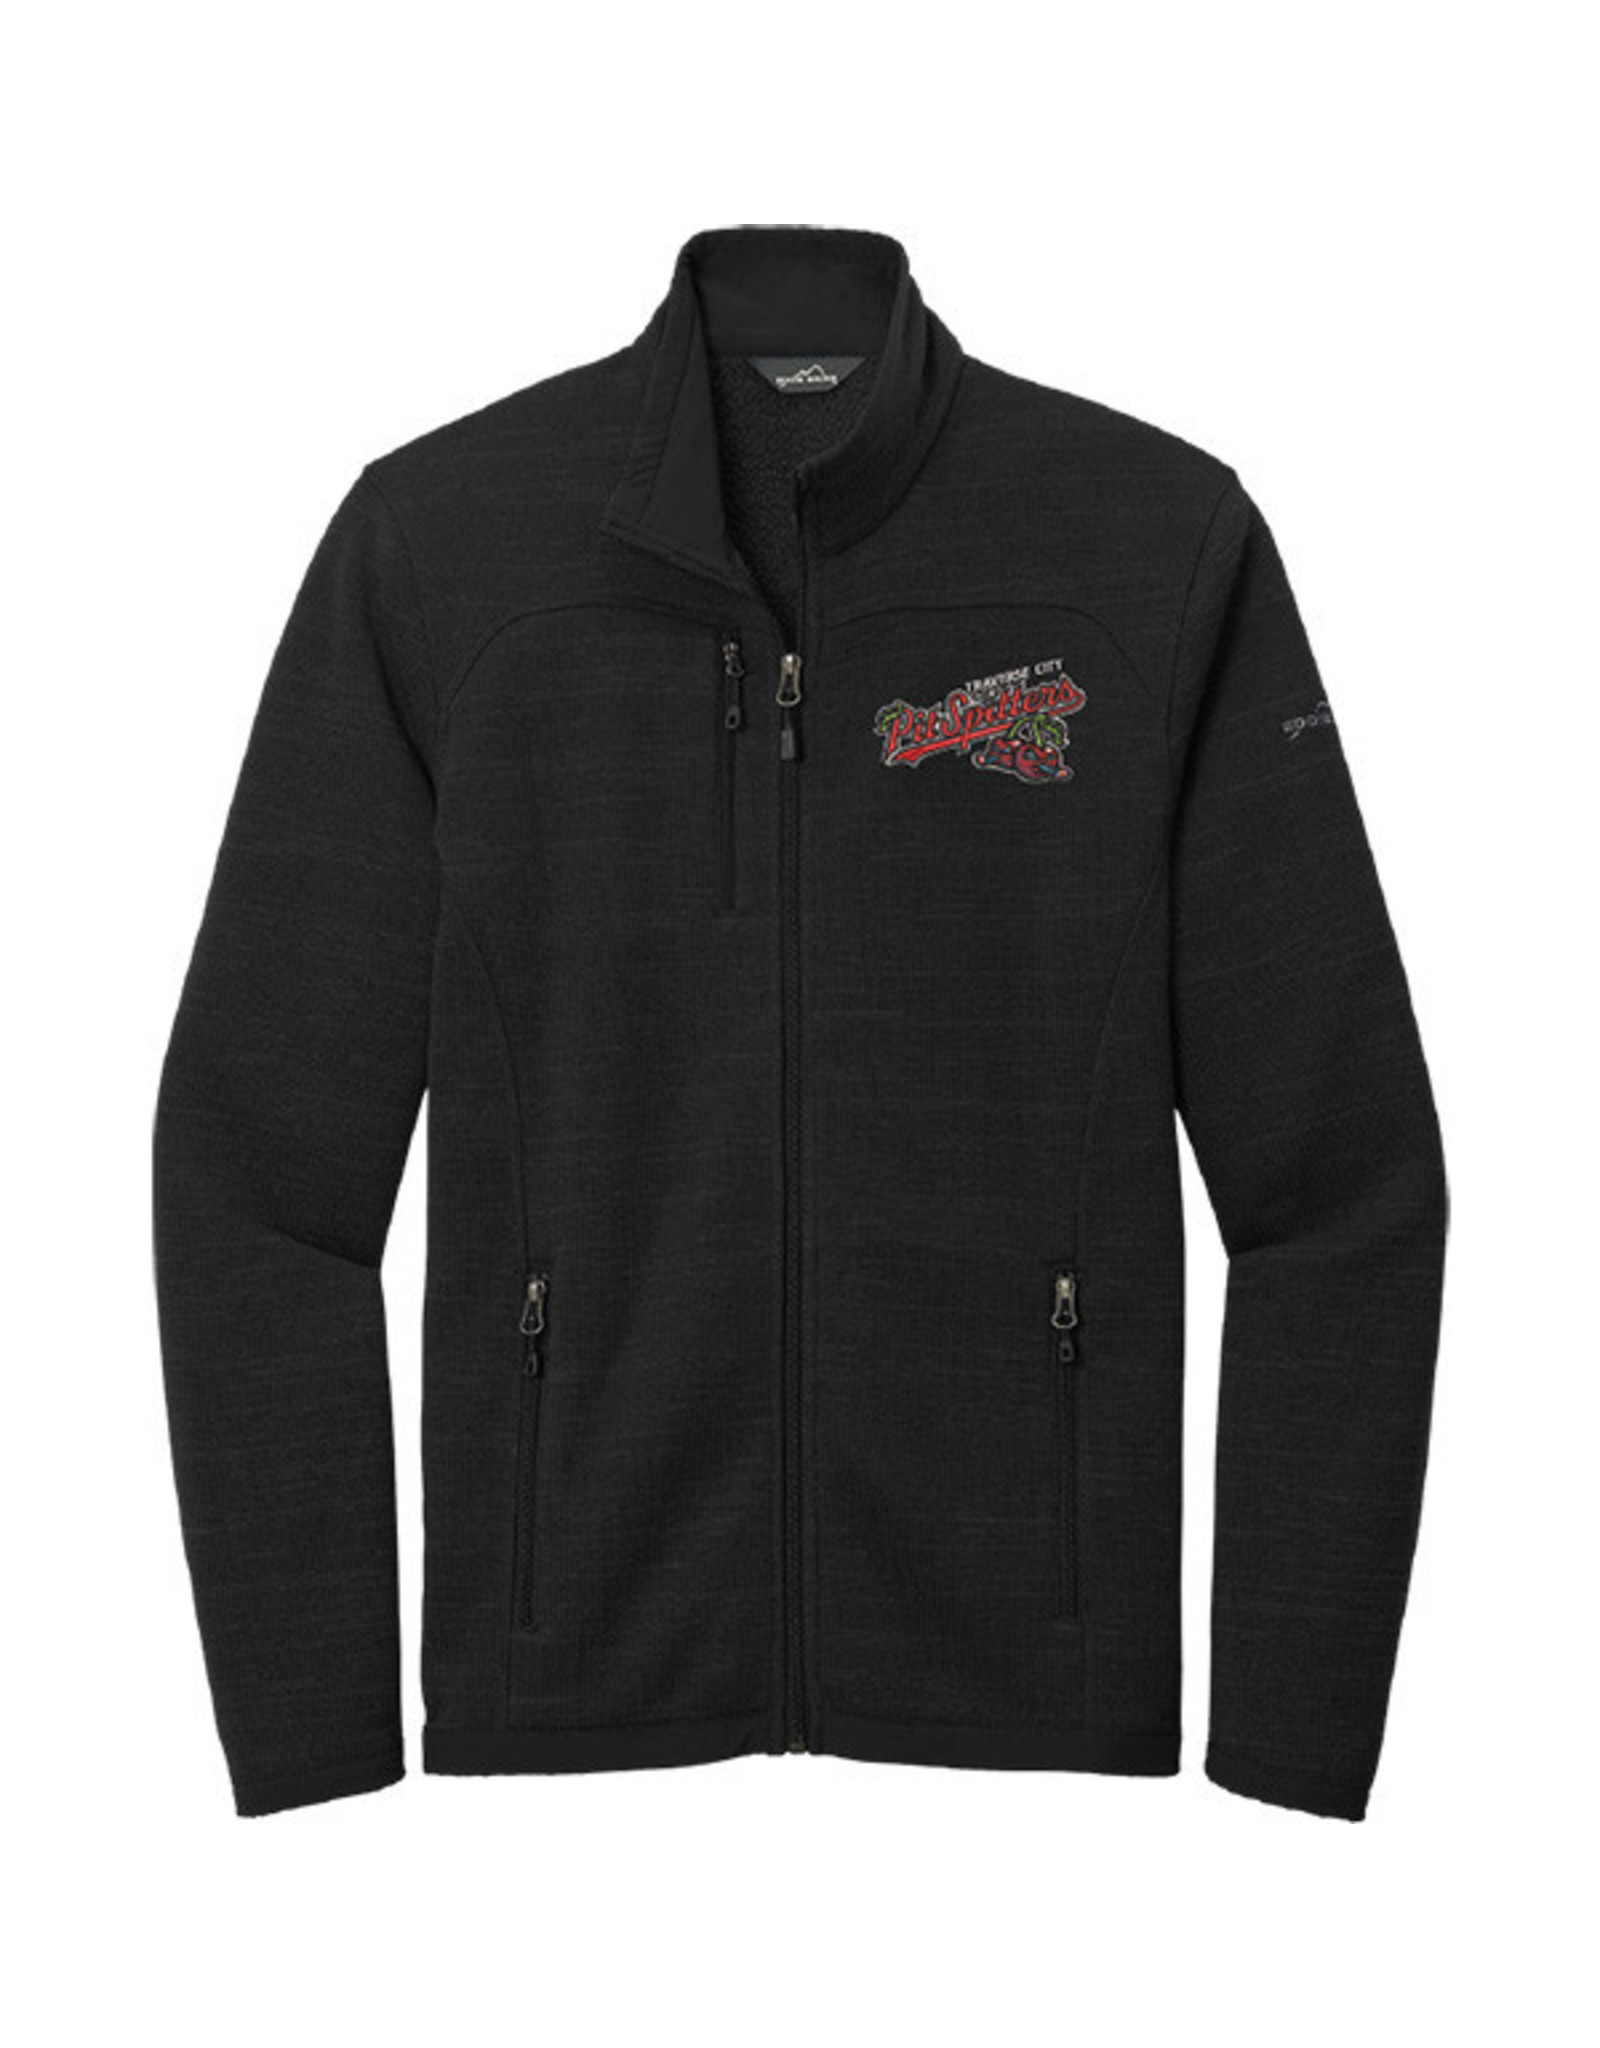 3702 Eddie Bauer Black Sweater Fleece Full Zip Jacket